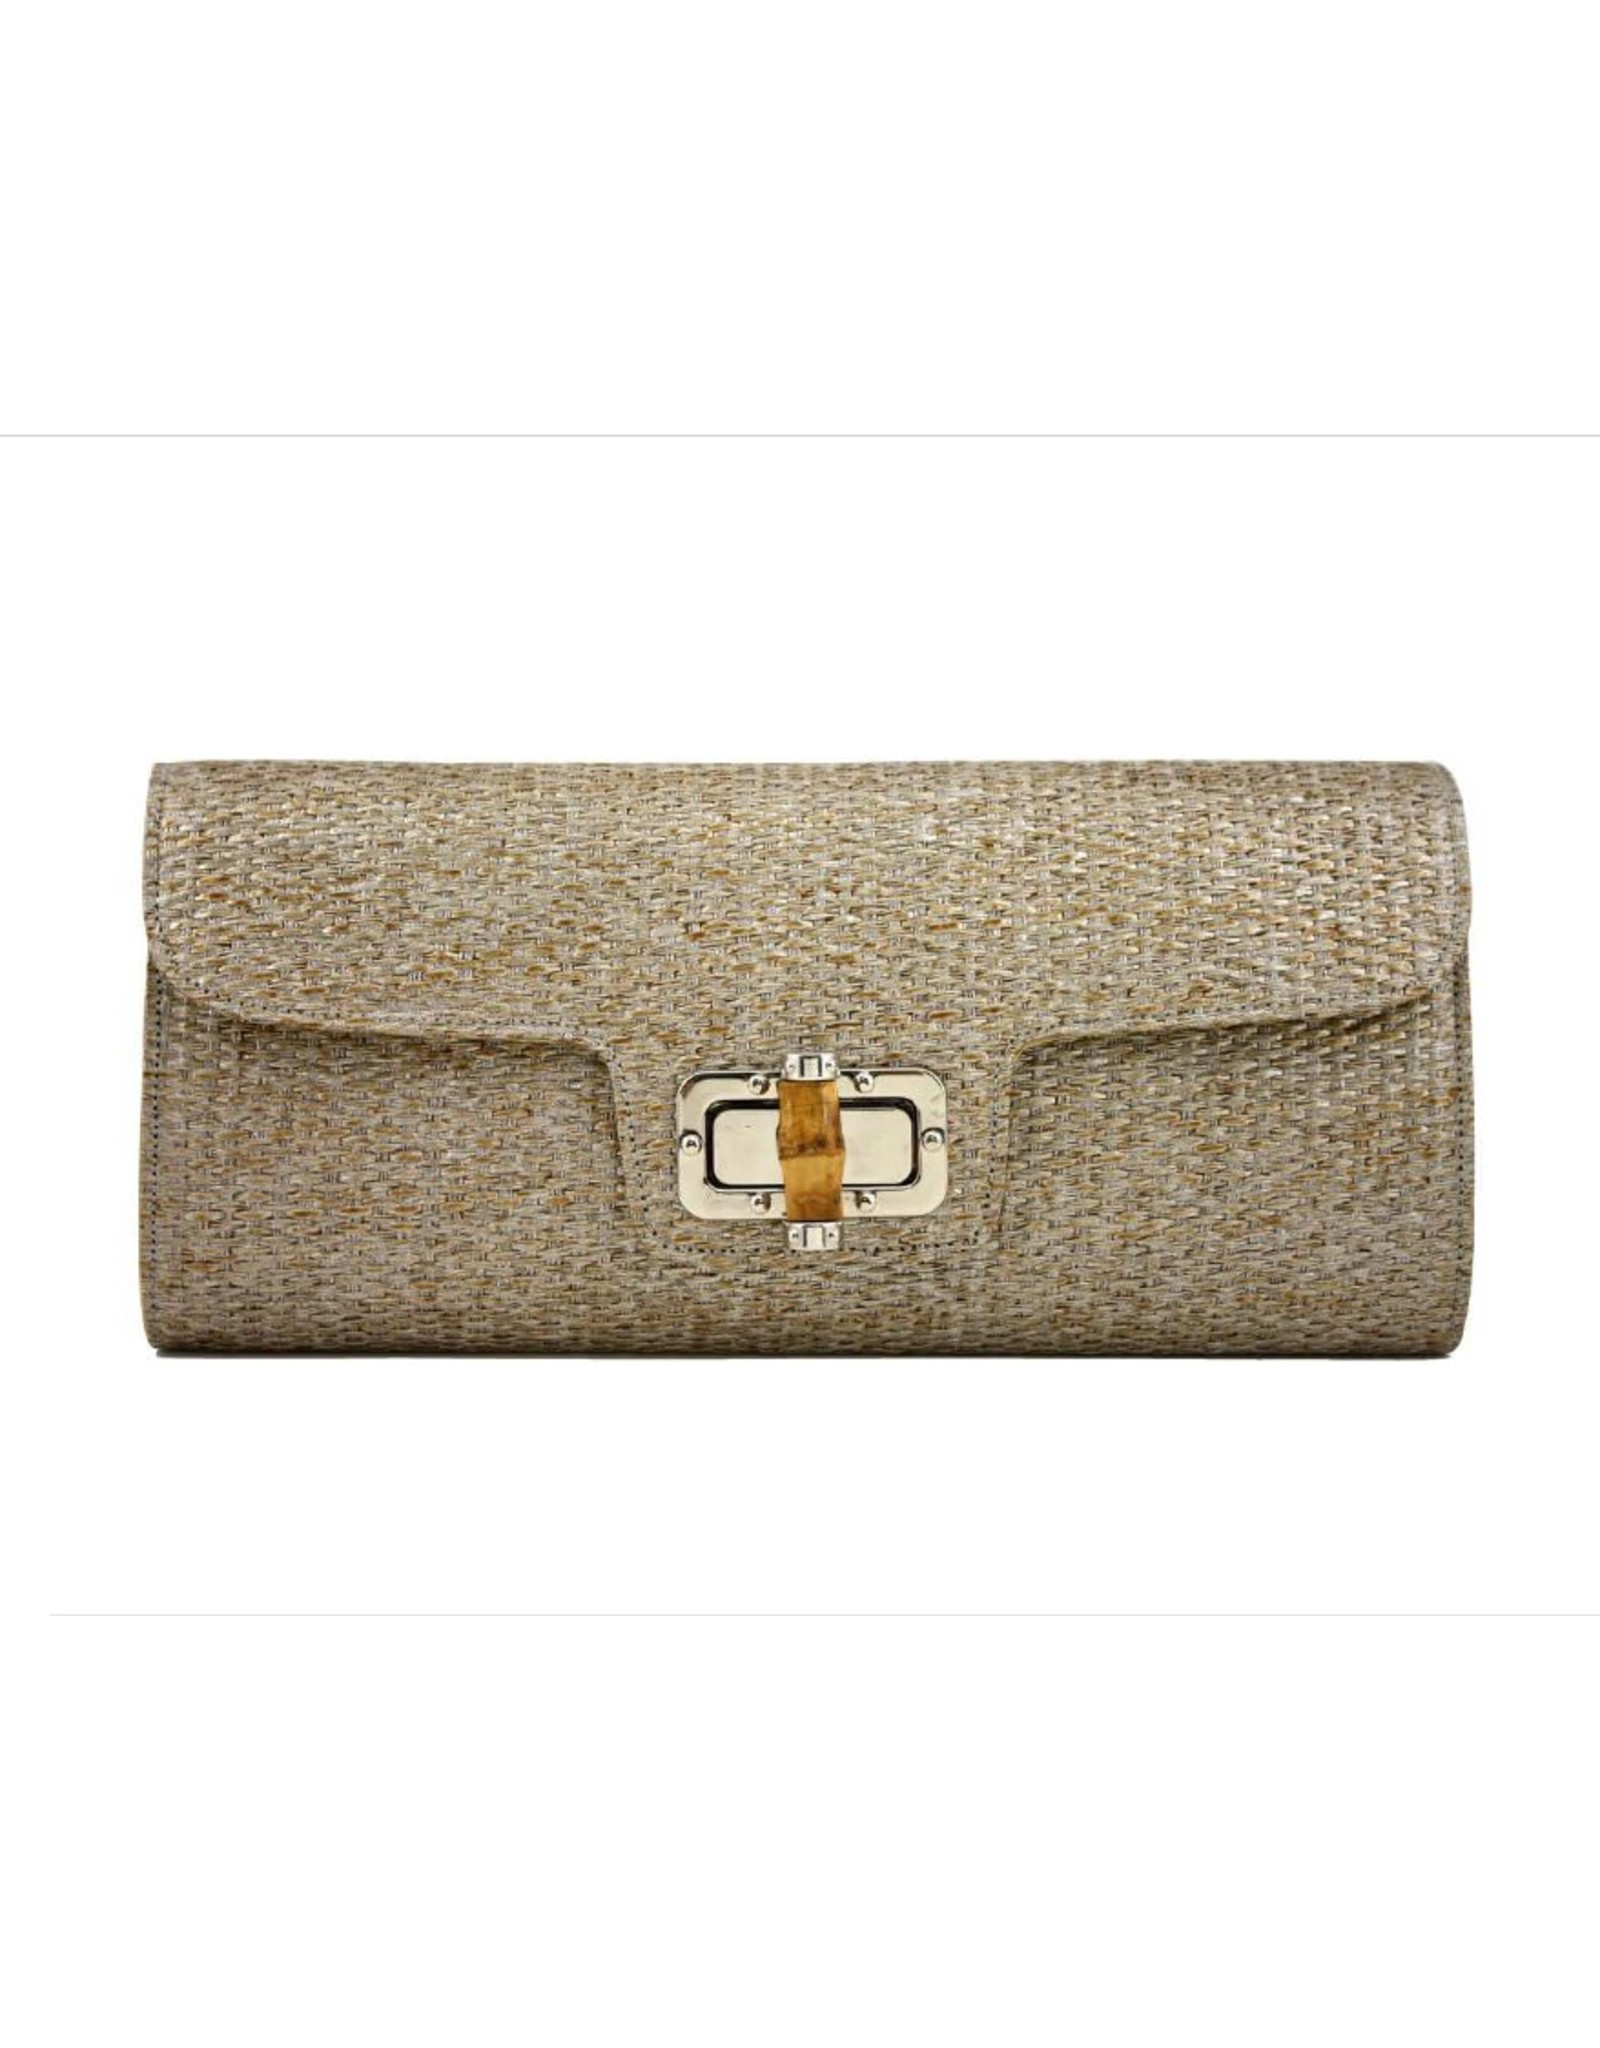 Gold Woven Clutch with Bamboo Turn